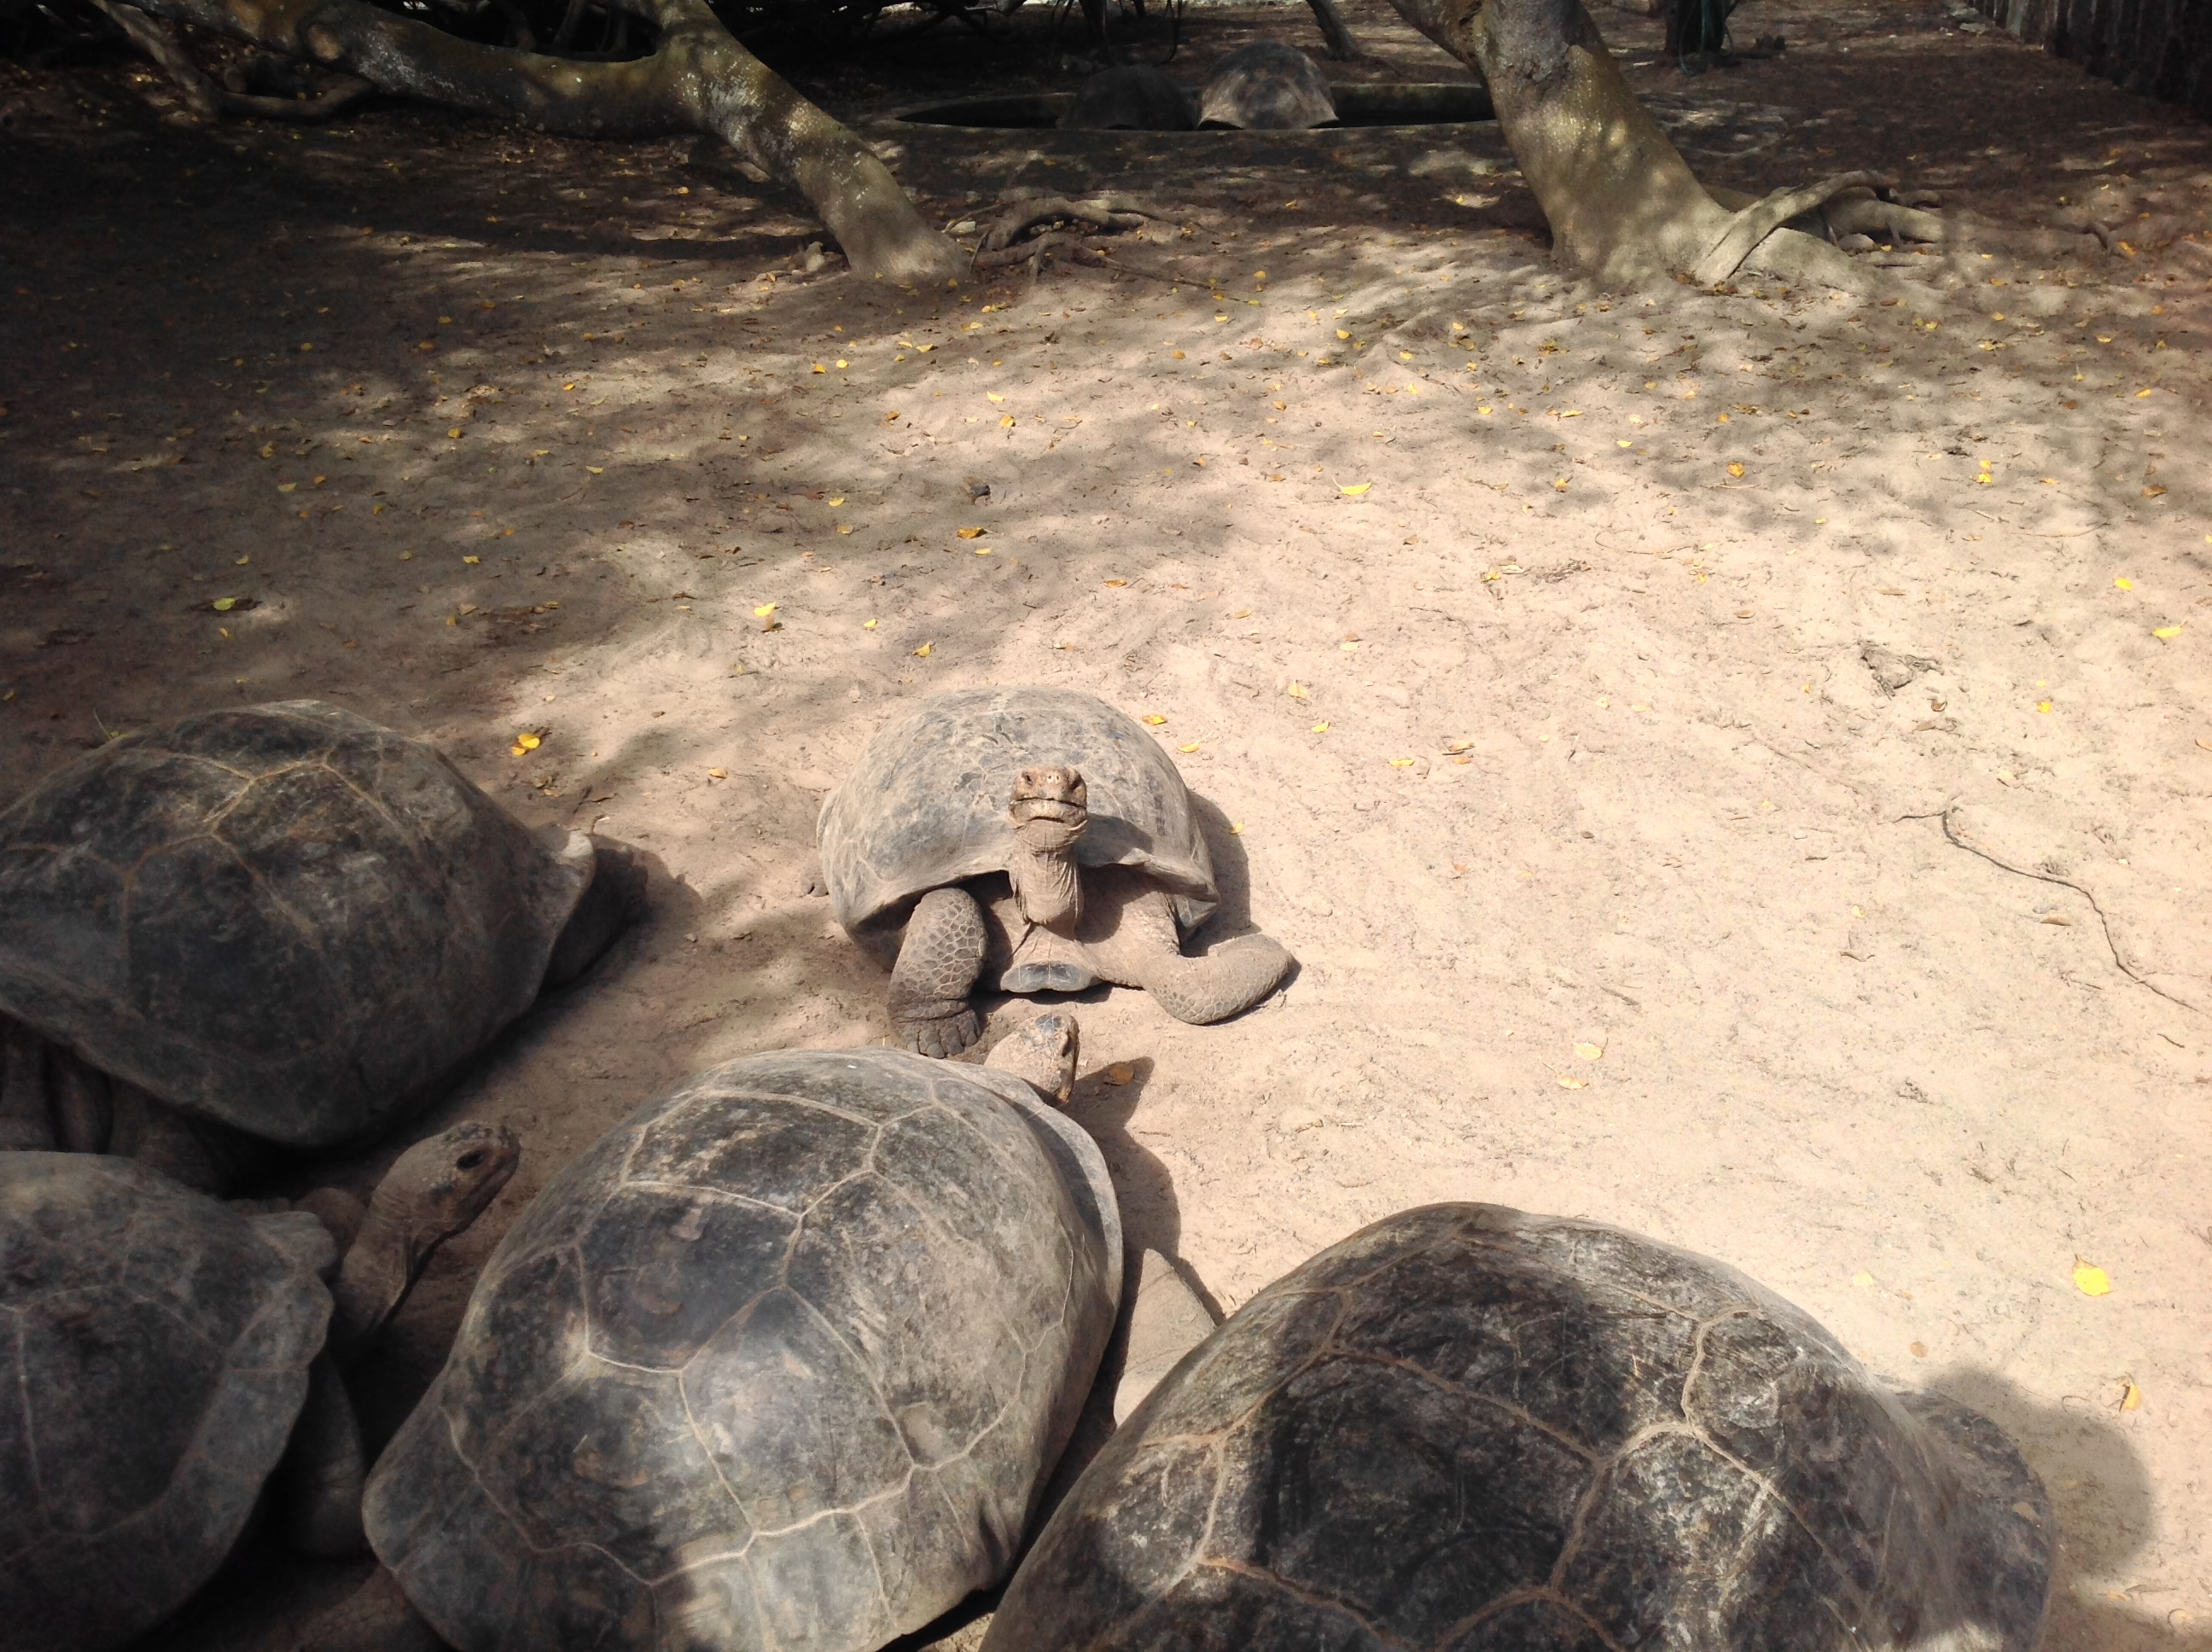 A few juvenile Galapagos Tortoises in the rehabilitation center.